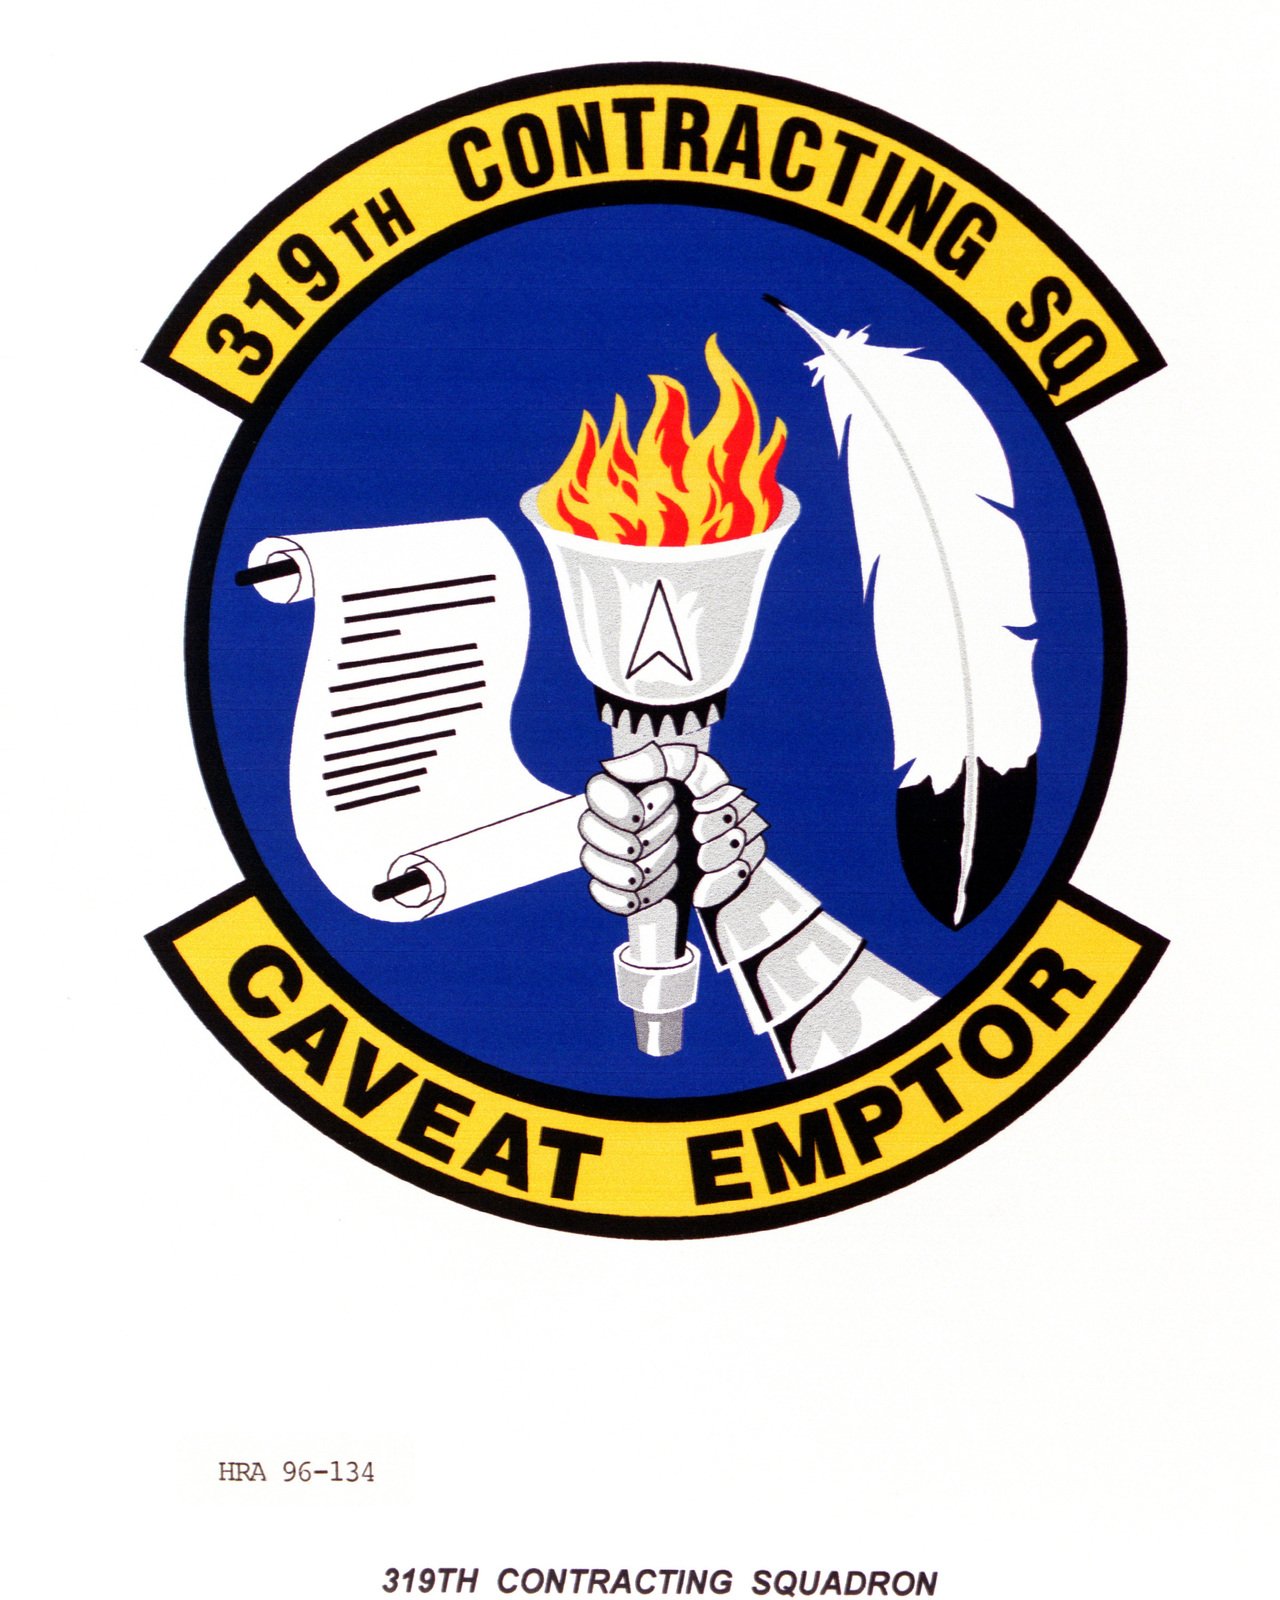 Air Force Organizational Emblem. 319th Contracting Squadron Exact Date Shot Unknown